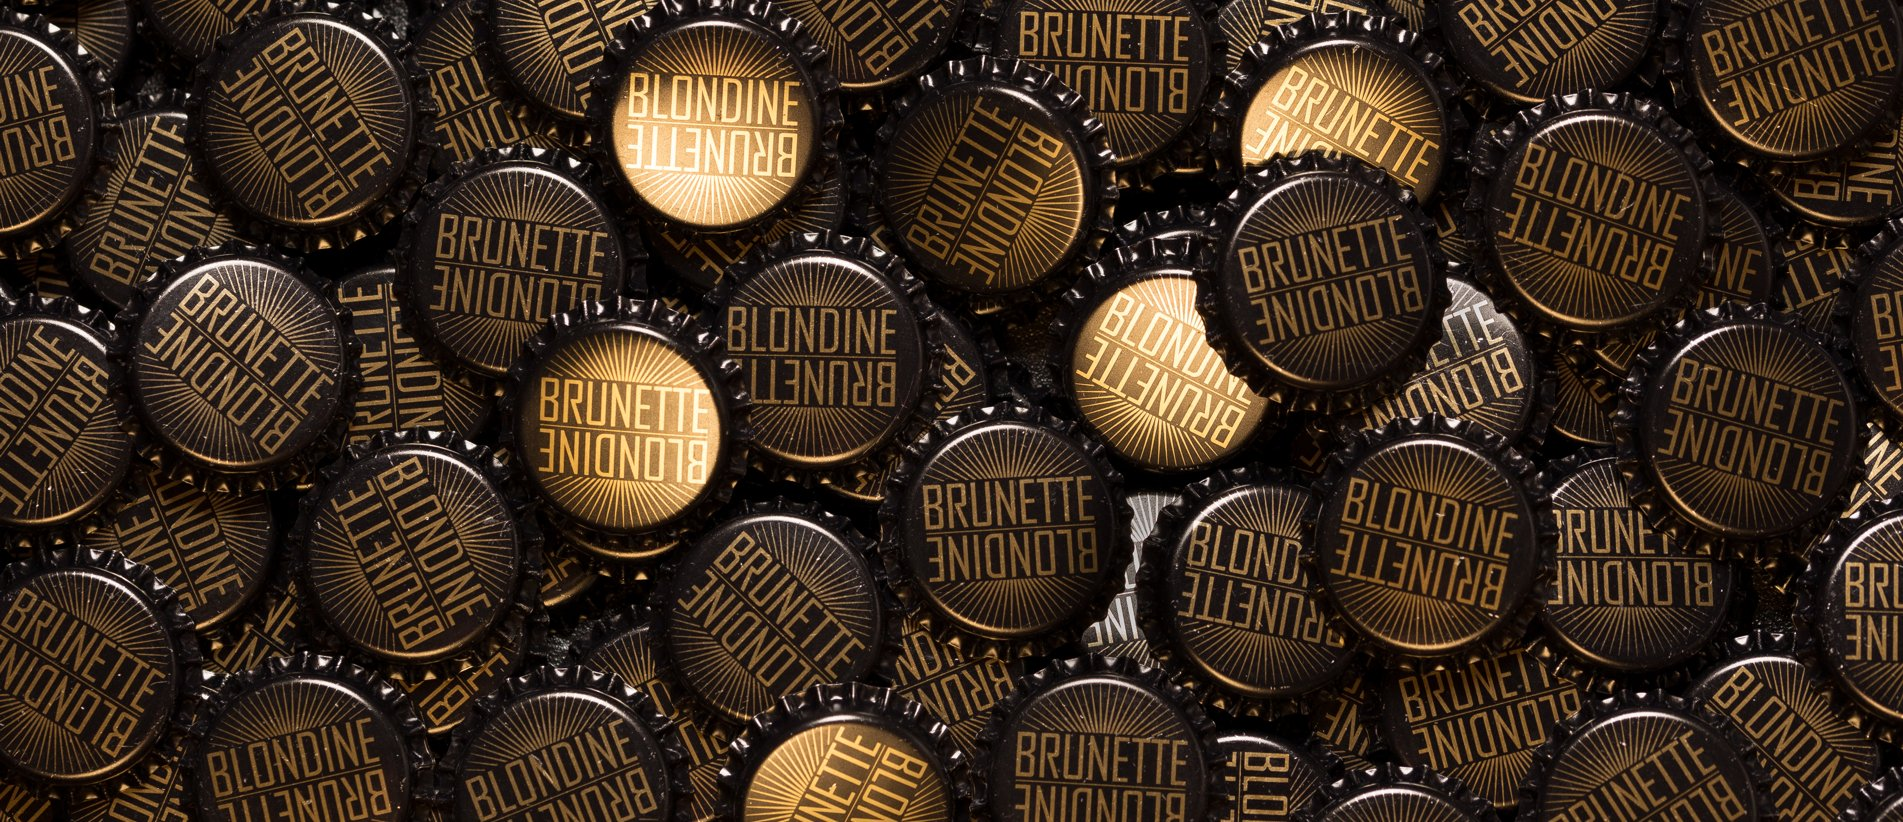 Blondine and Brunette Craftet Beer